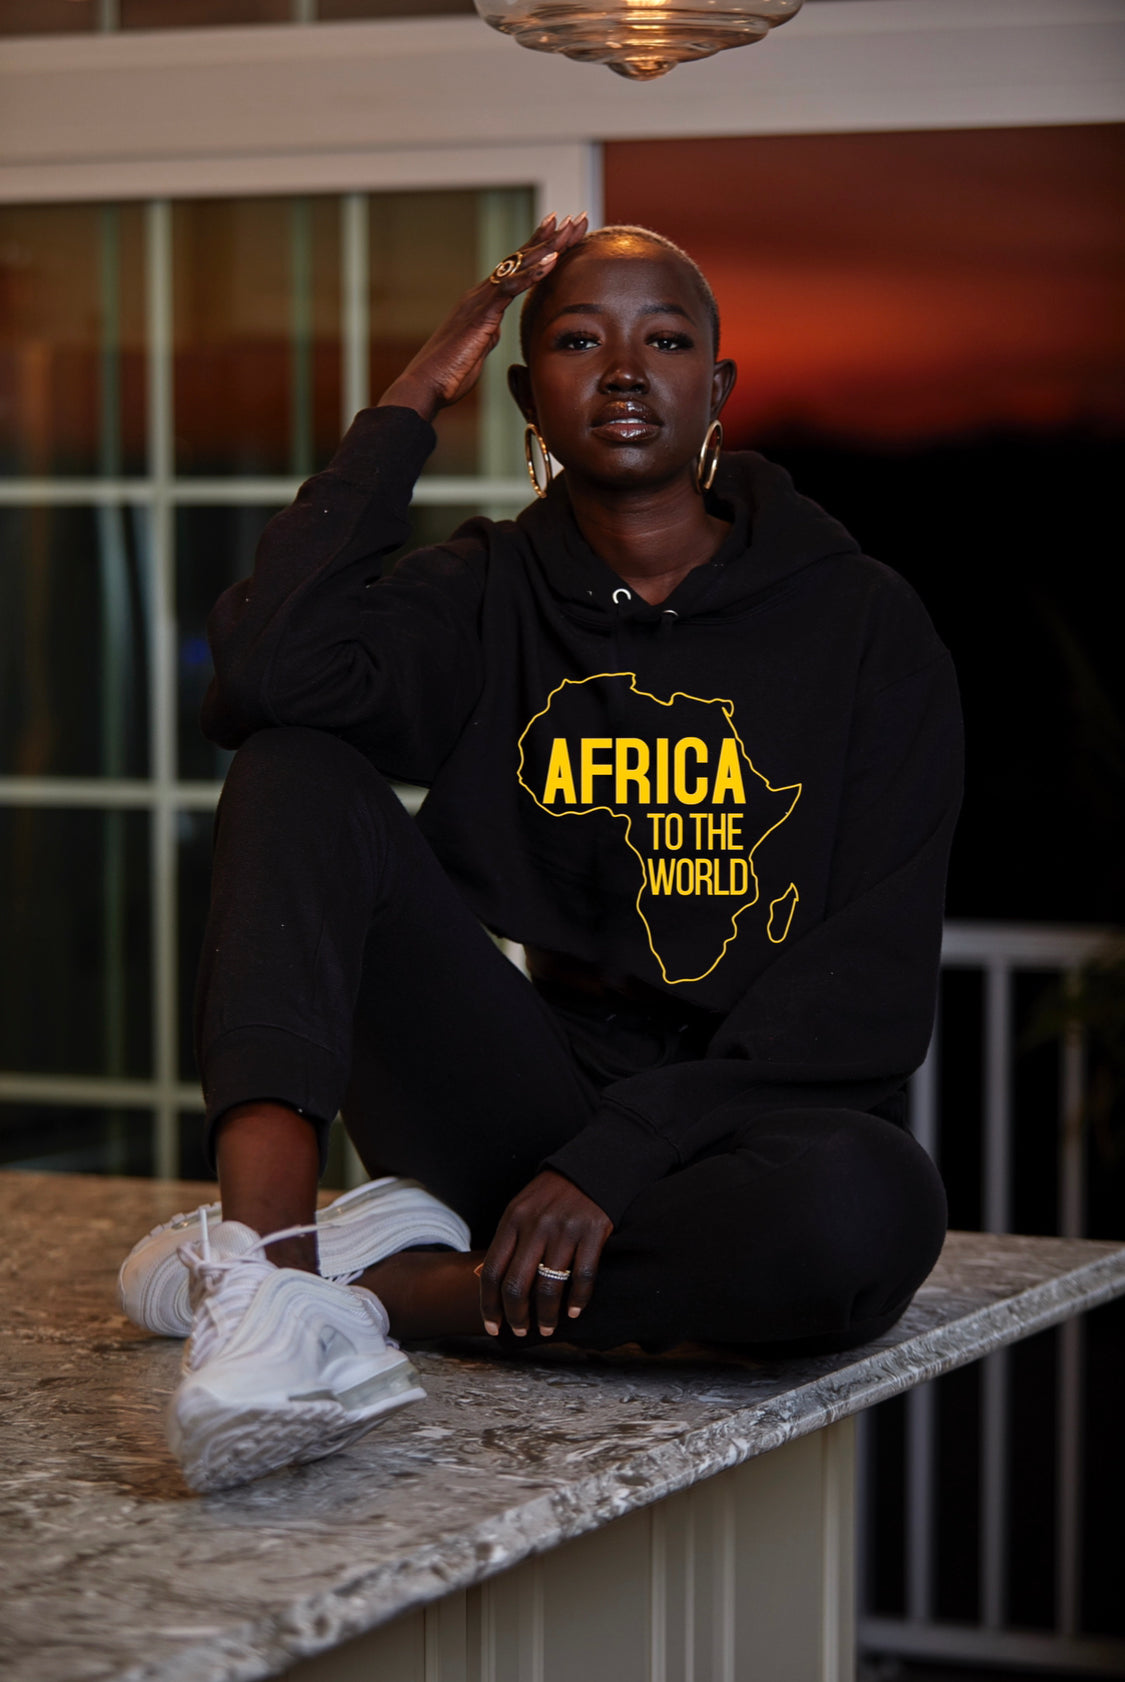 Africa to the world unisex sweater